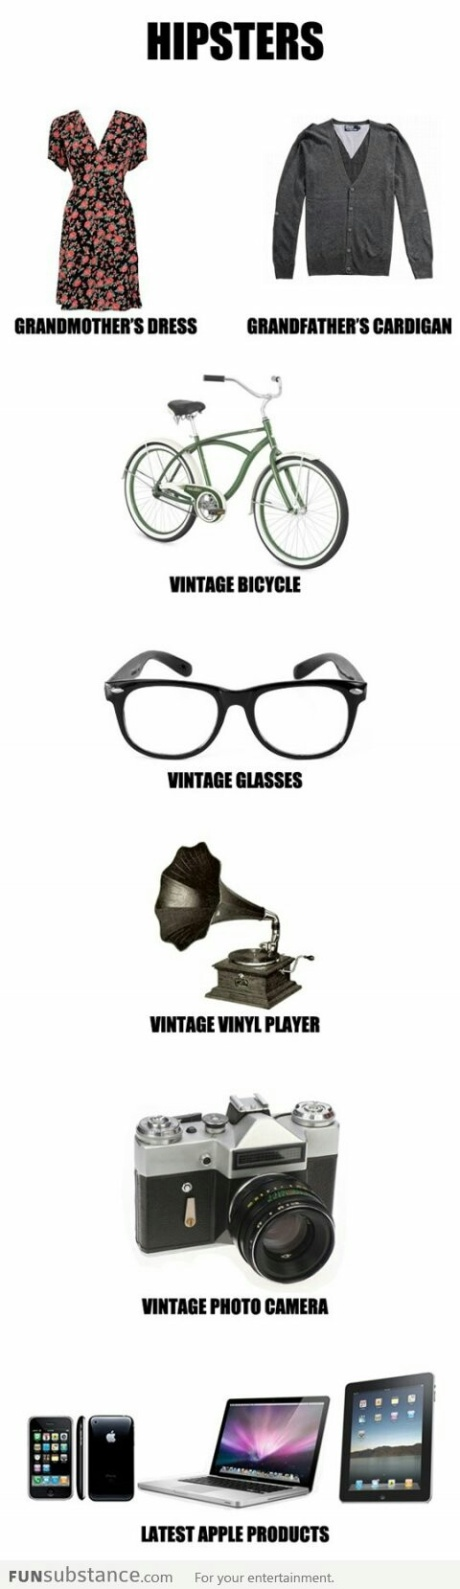 hipsters